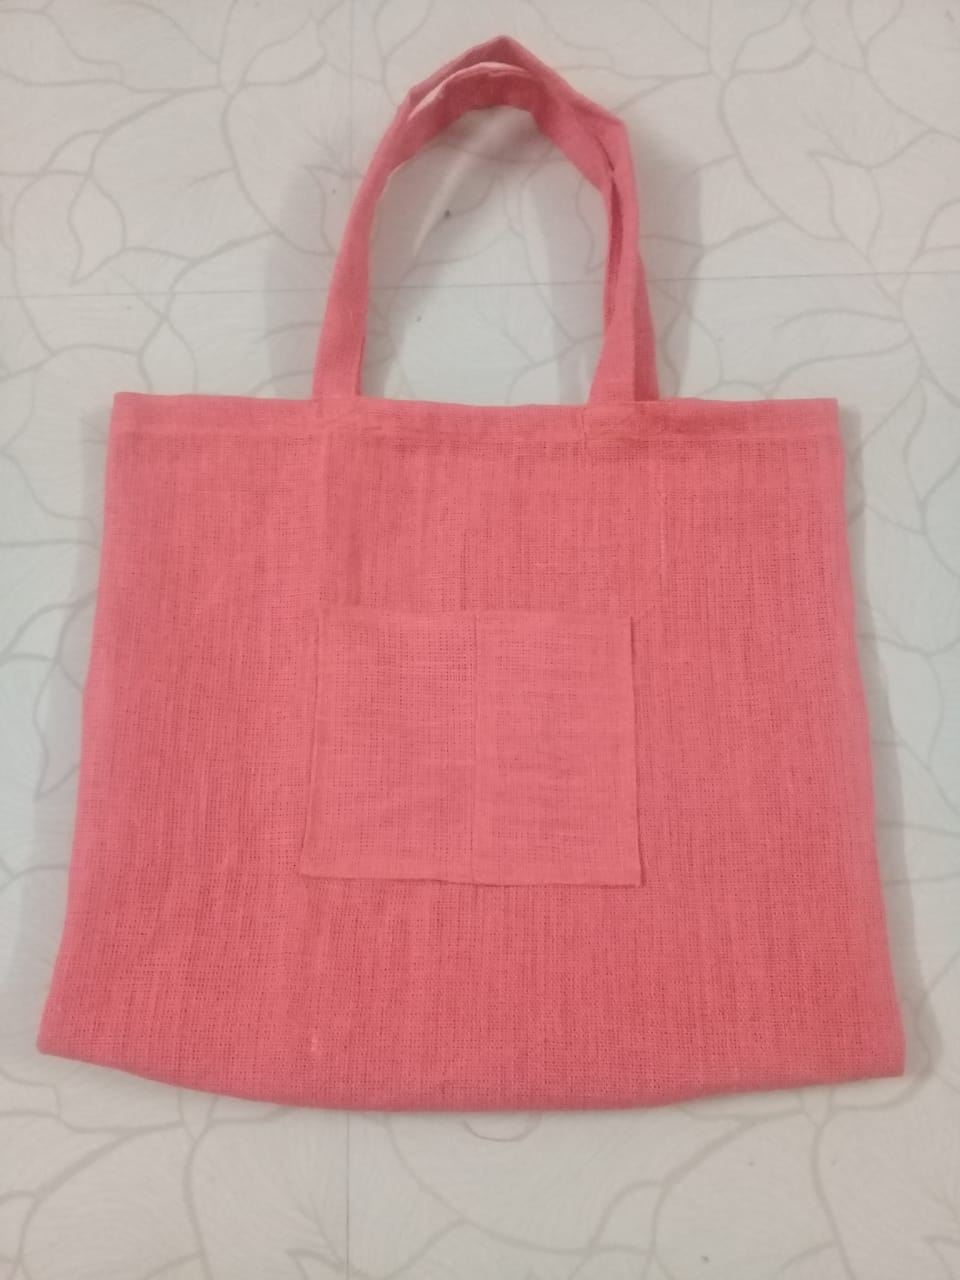 Easily decomposing cotton bags from Handicrops